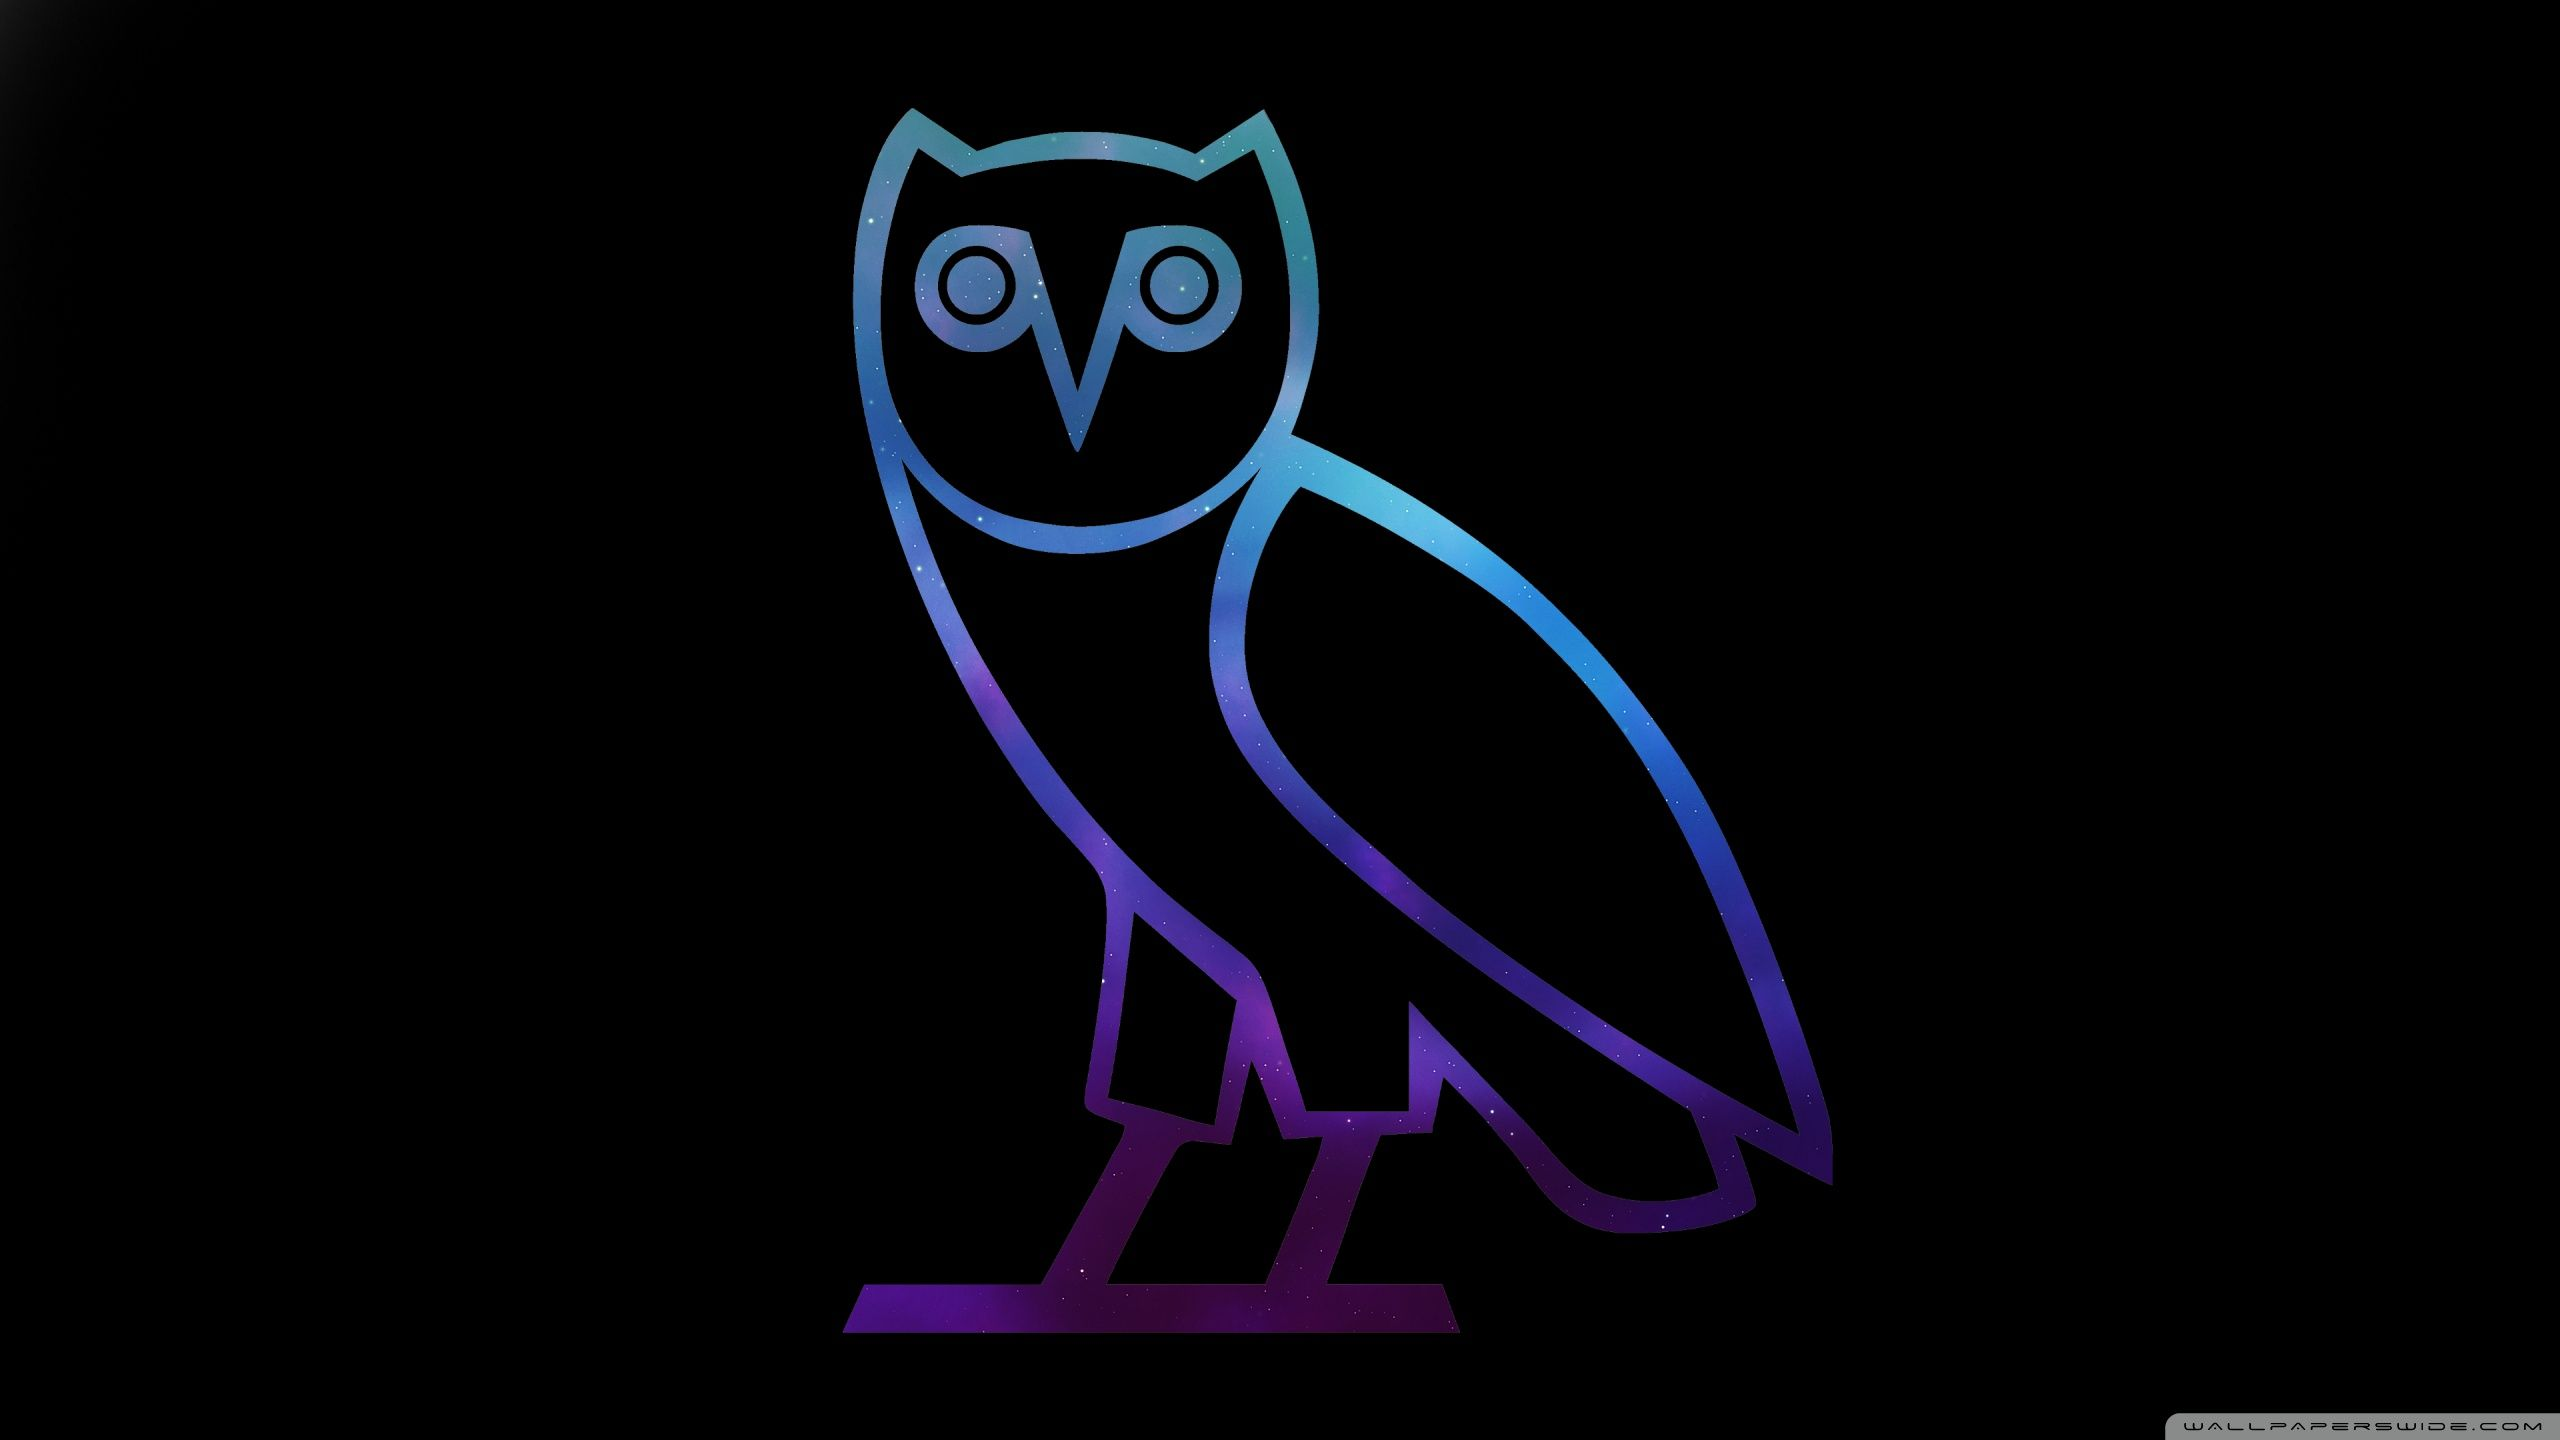 Drake Owl Ovo HD desktop wallpaper Widescreen